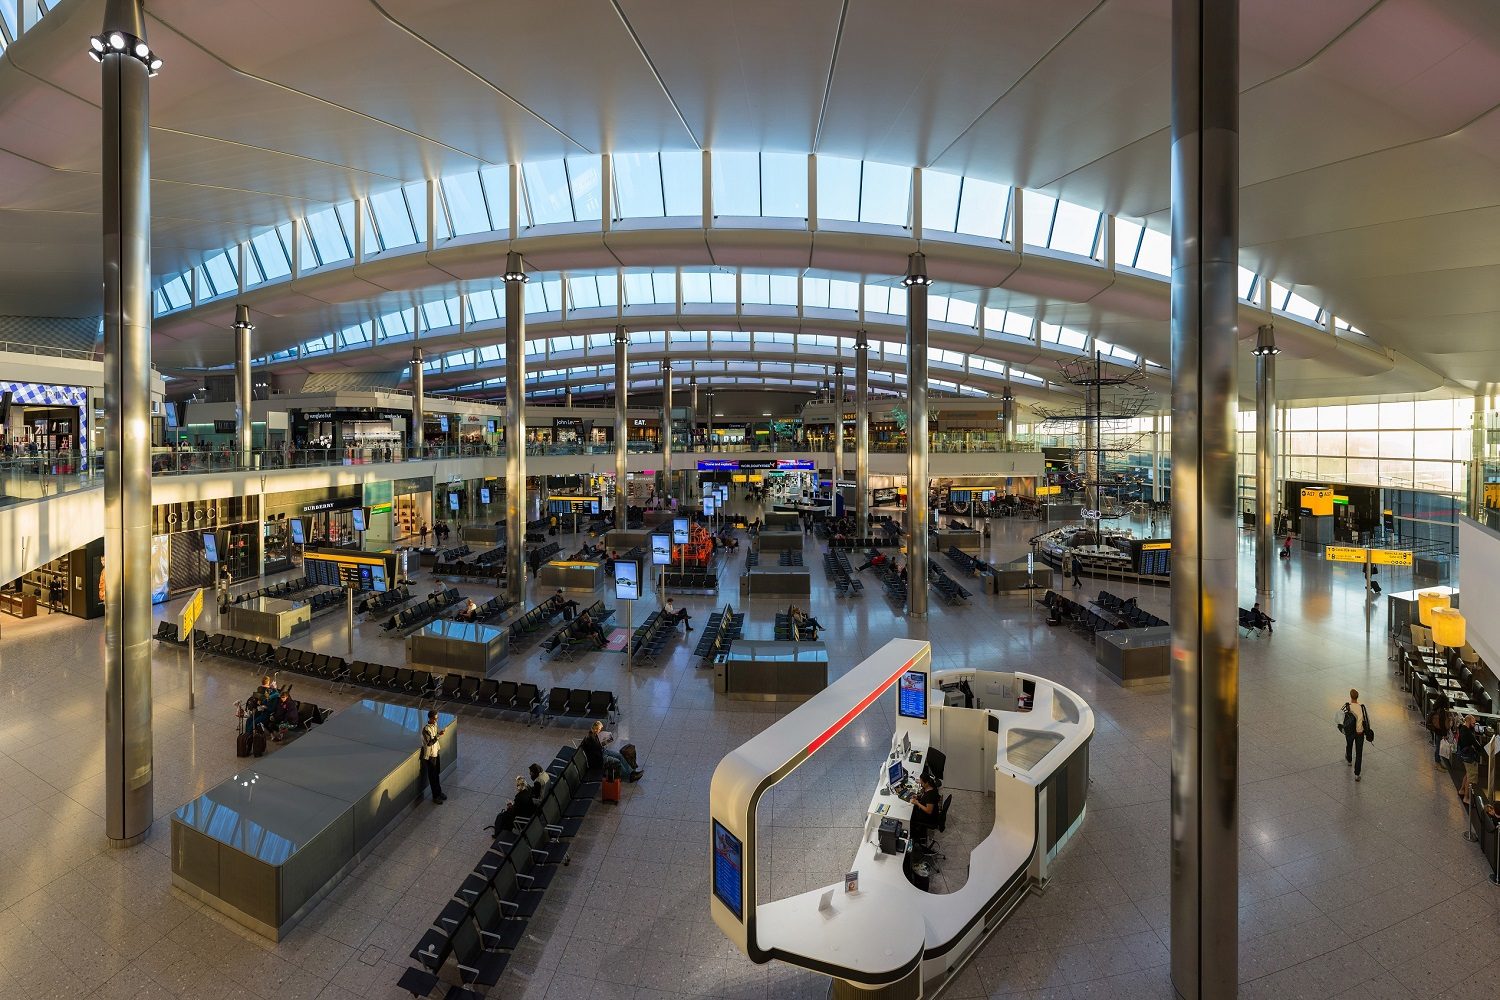 Image of the interior of Heathrow Airport Terminal 2.